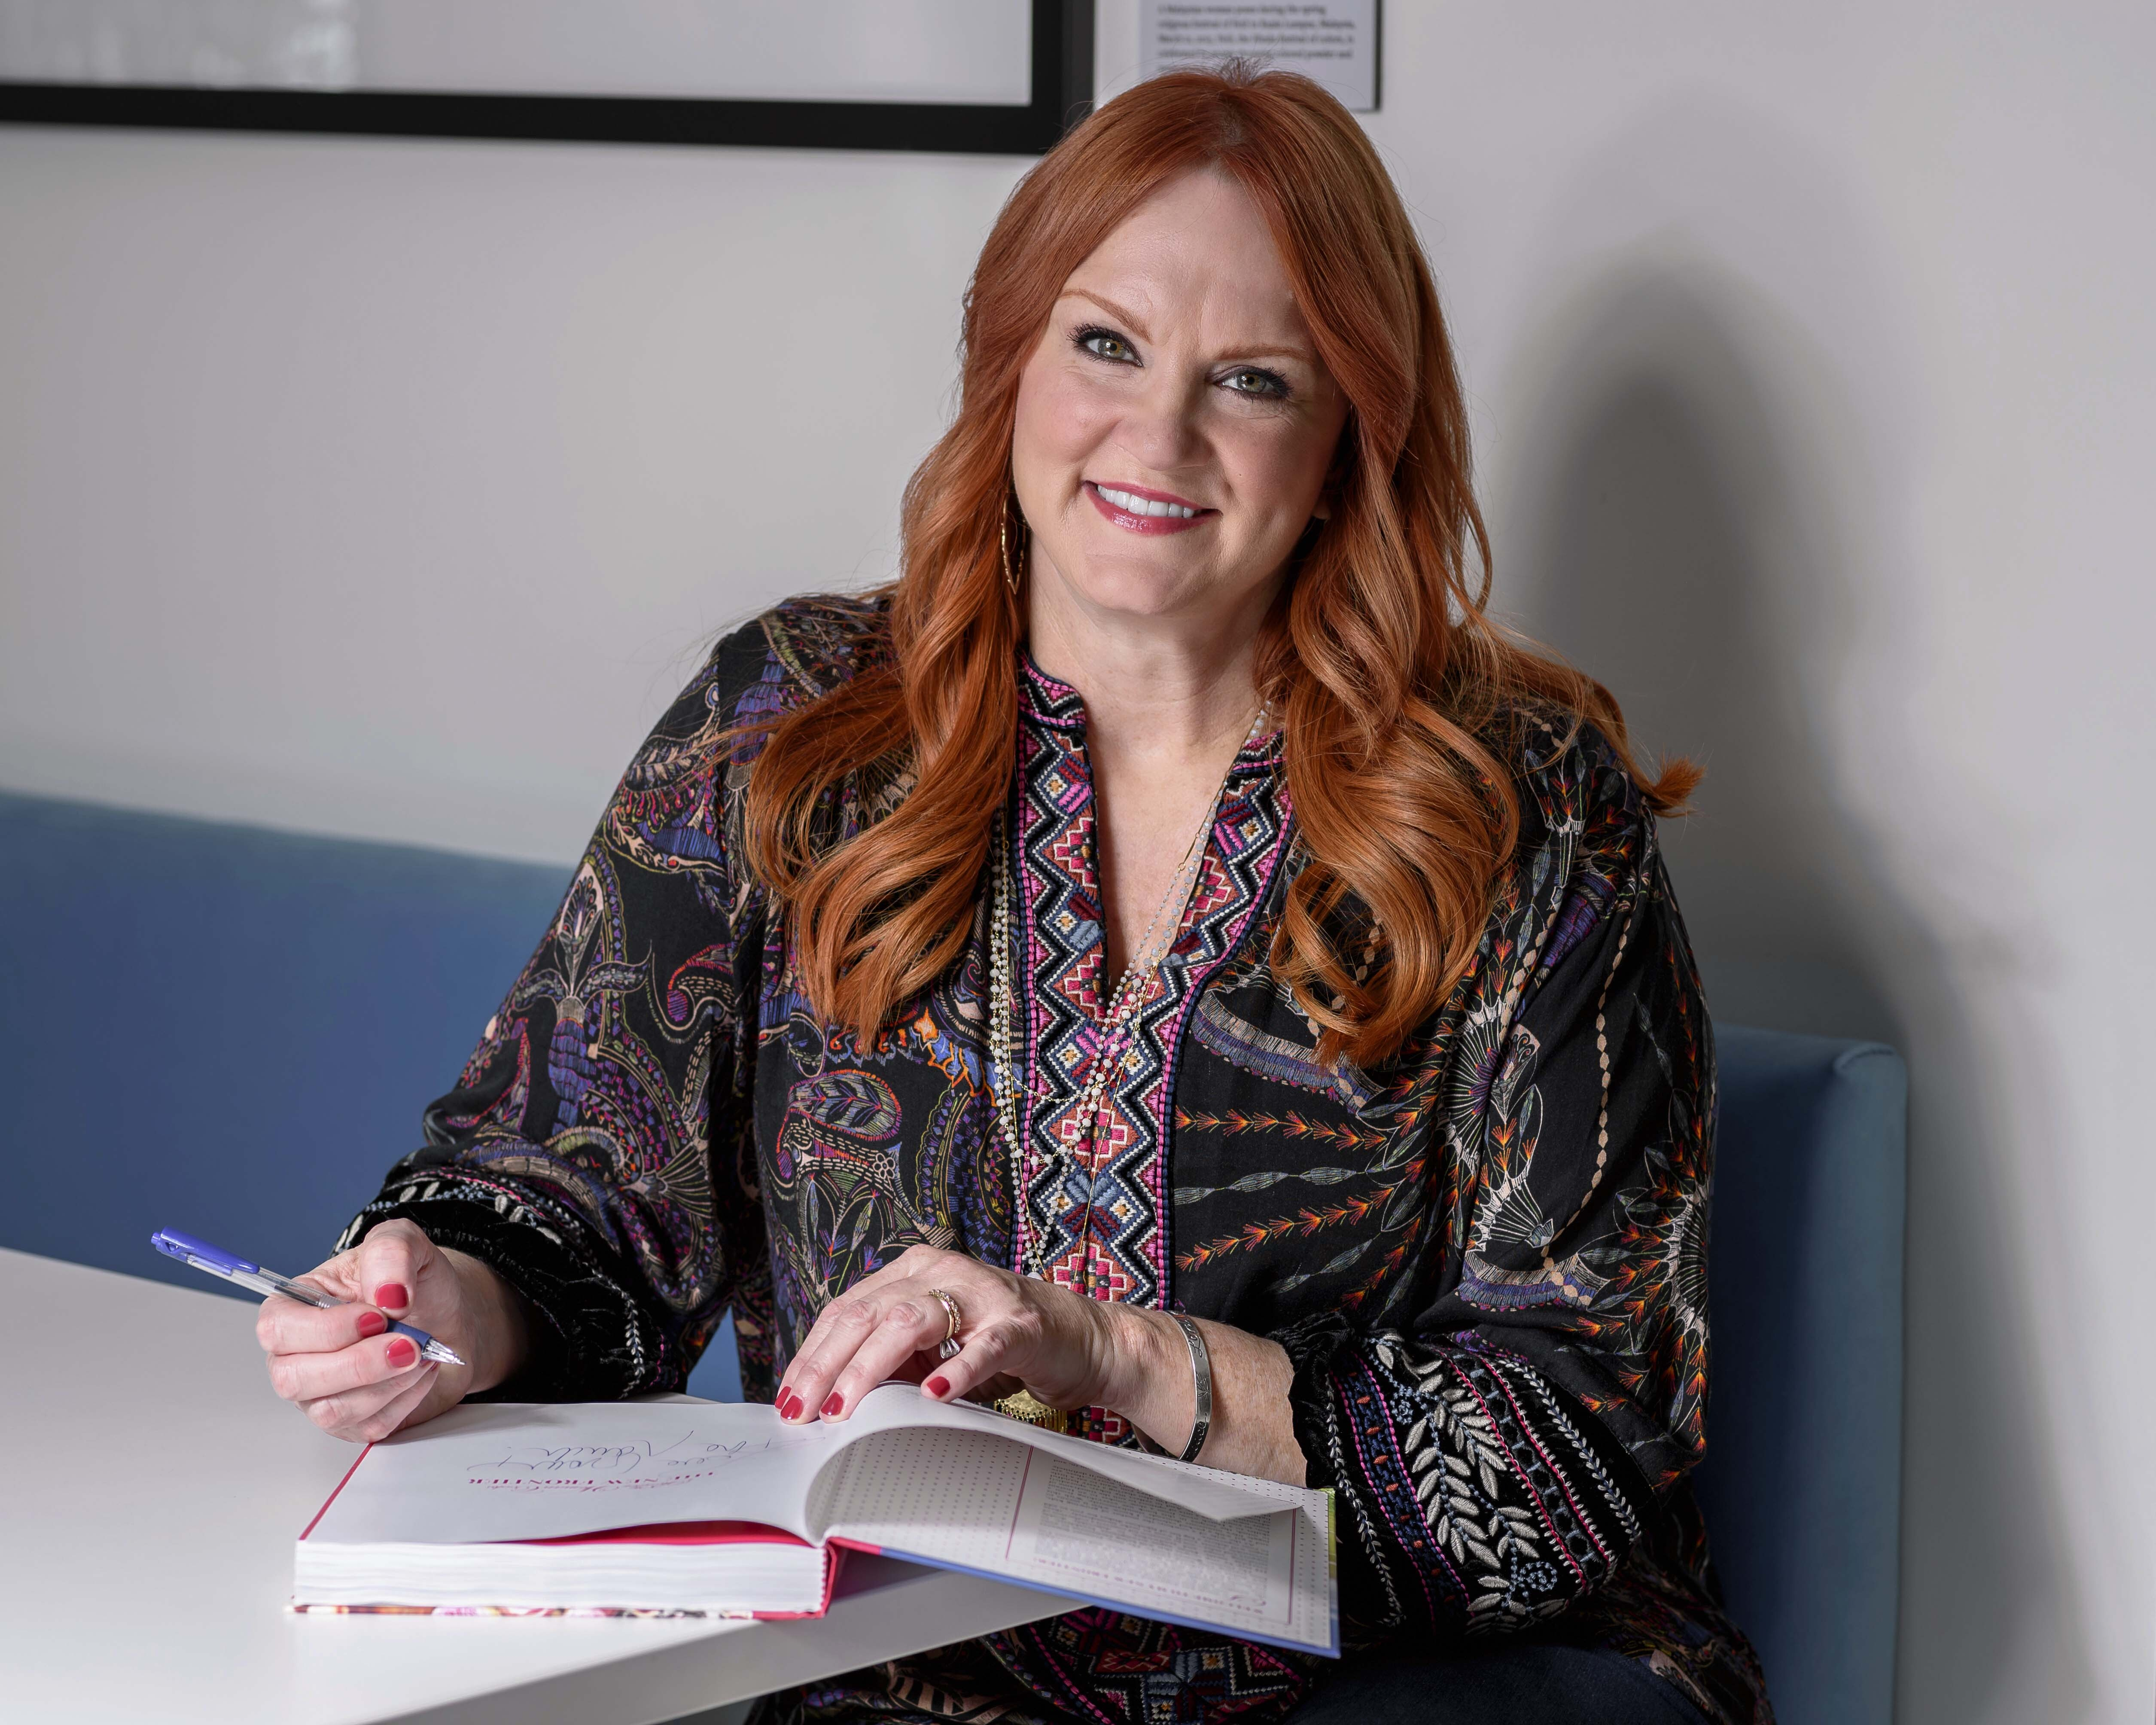 """FILE - This Oct. 21, 2019 file photo shows TV personality Ree Drummond posing for a portrait to promote her new cookbook """"The Pioneer Woman Cooks: The New Frontier: 112 Fantastic Favorites for Everyday Eating."""" (Photo by Christopher Smith/Invision/AP) ORG XMIT: NYET567"""